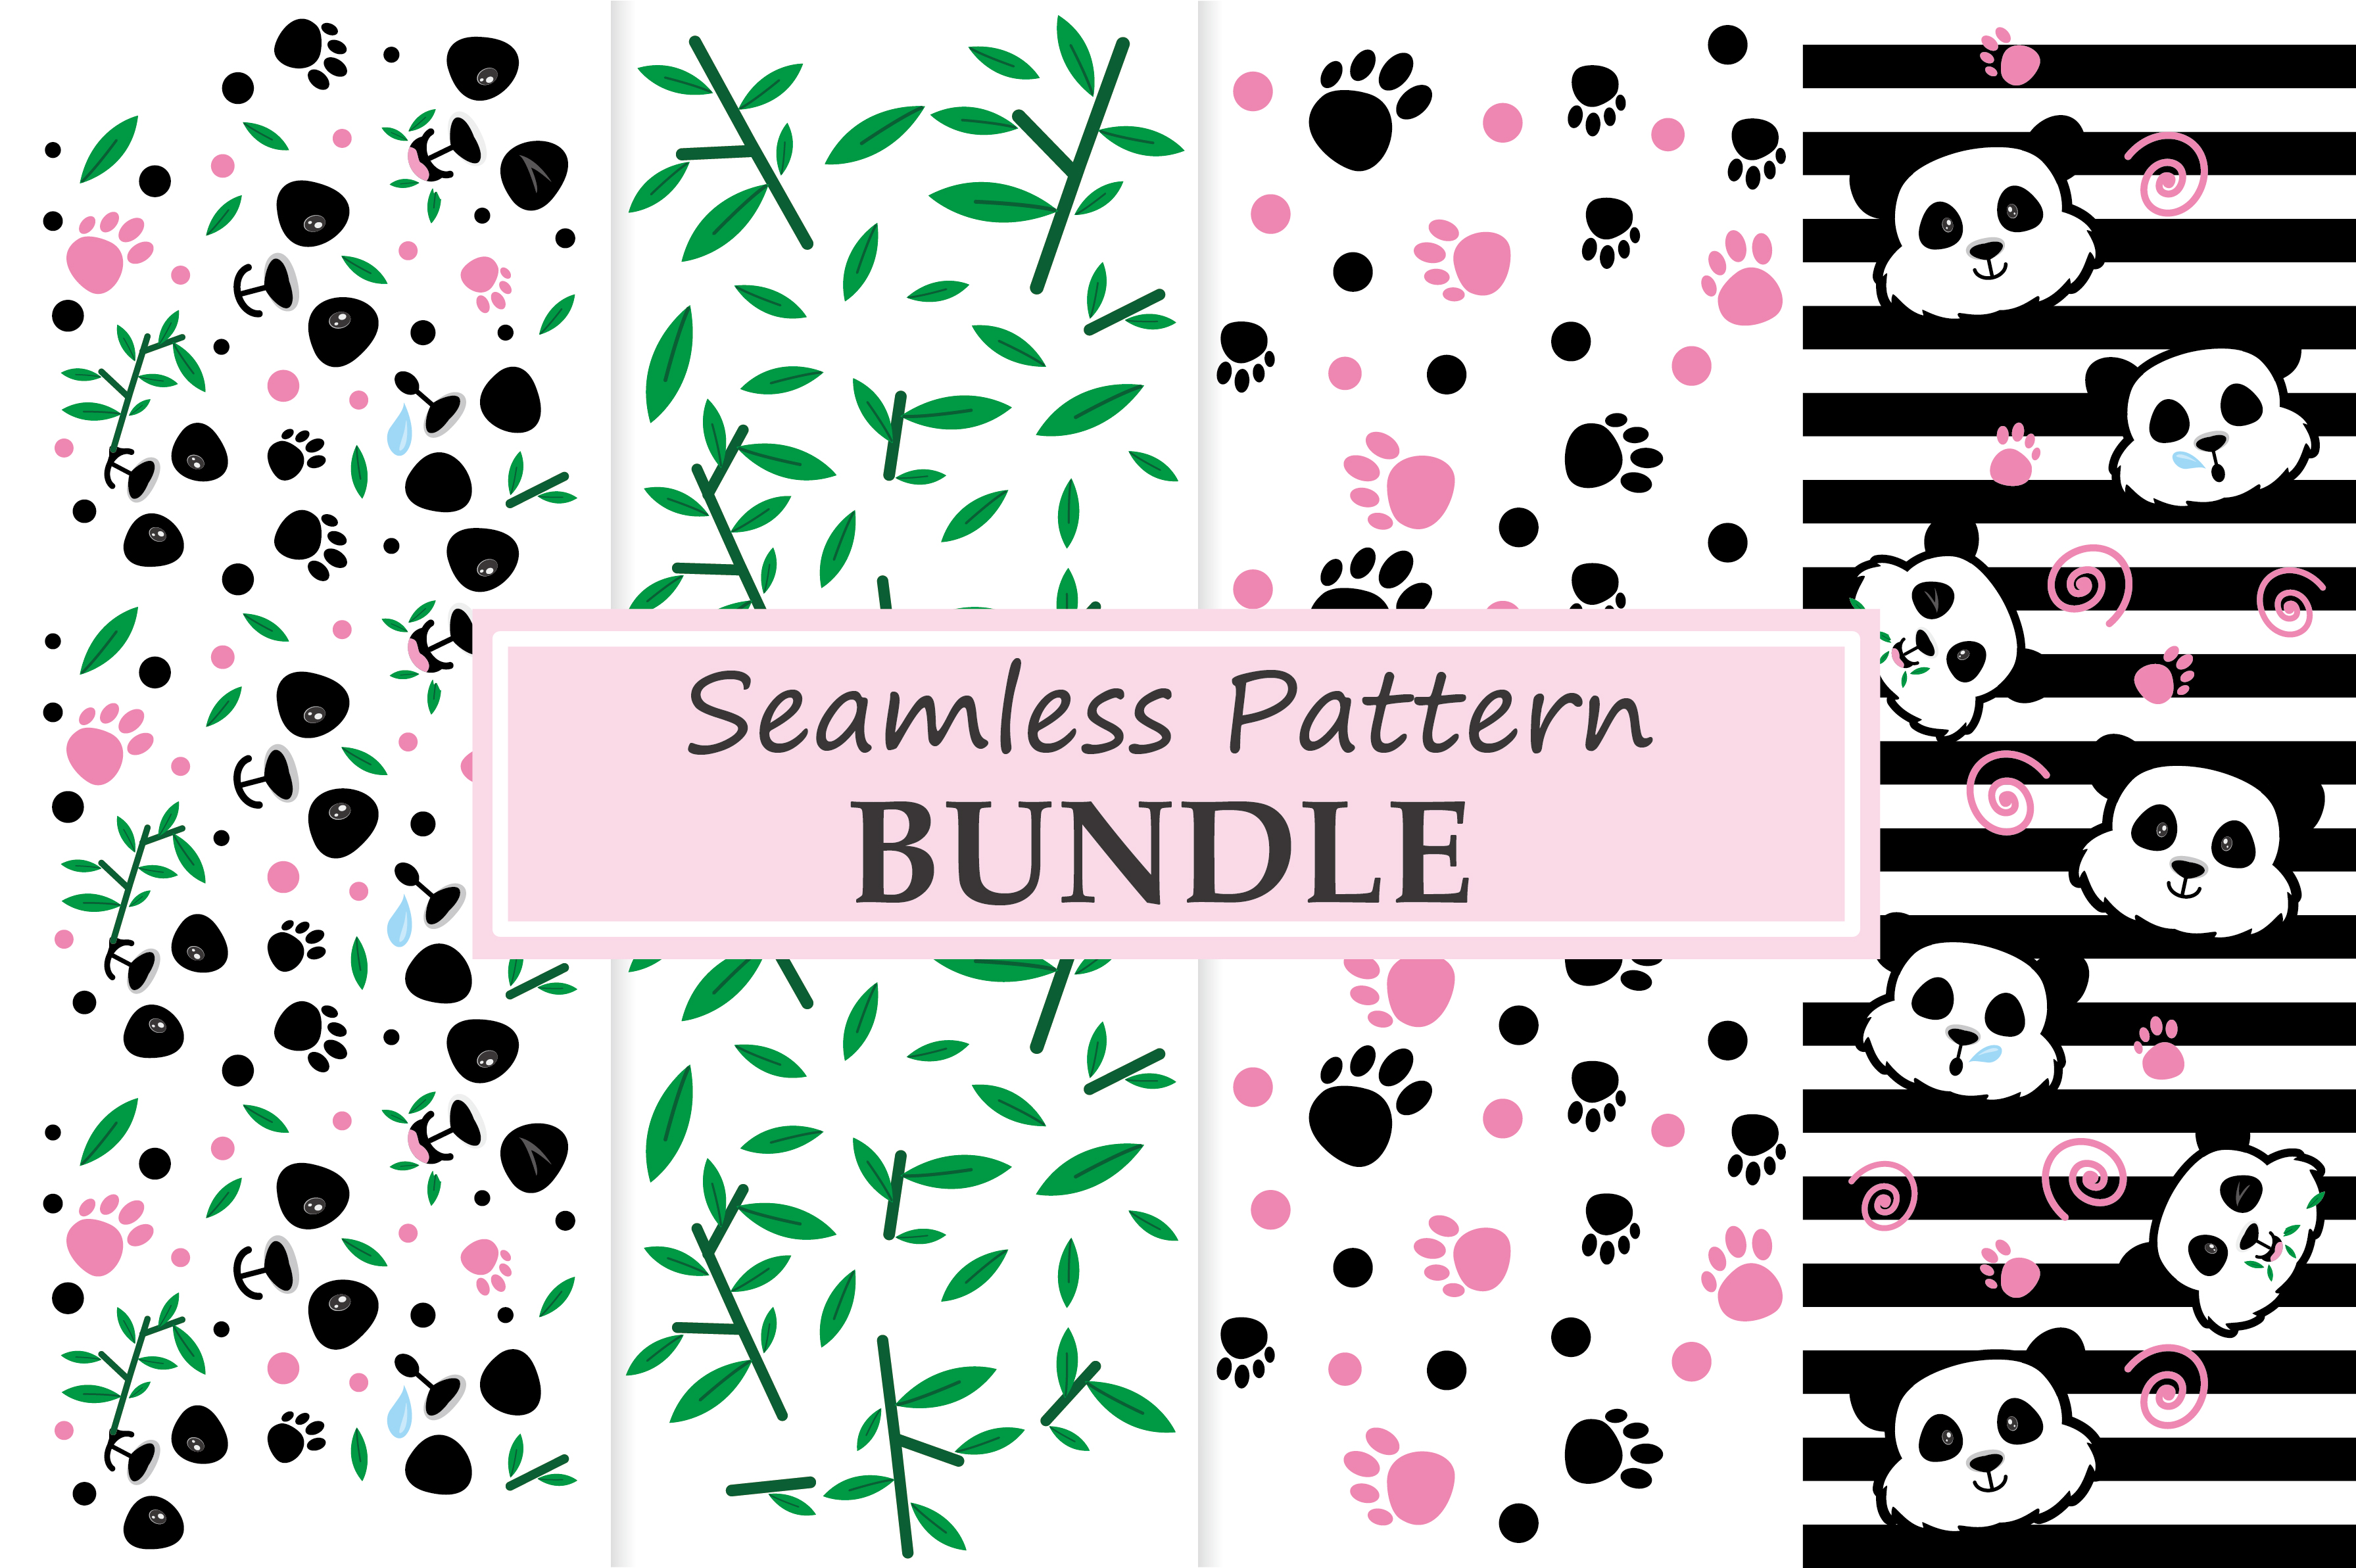 Download Free Panda Element Patterns Graphic By Abs Creative Fabrica for Cricut Explore, Silhouette and other cutting machines.